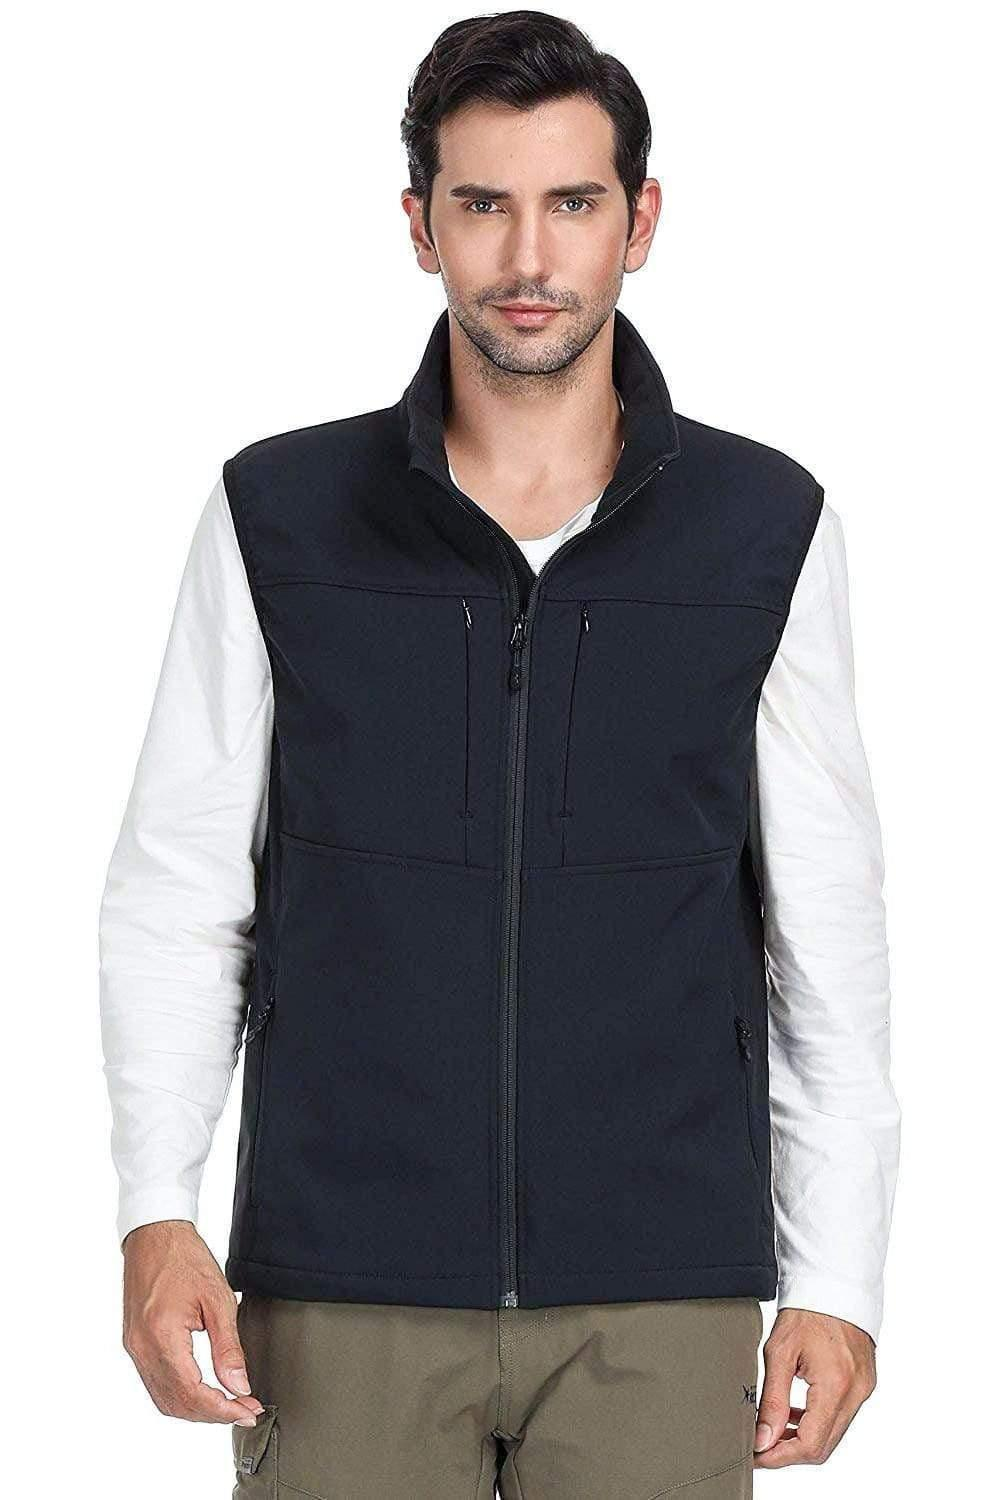 MIER  Travel Jacket, Vest BRAND NEW  Softshell for